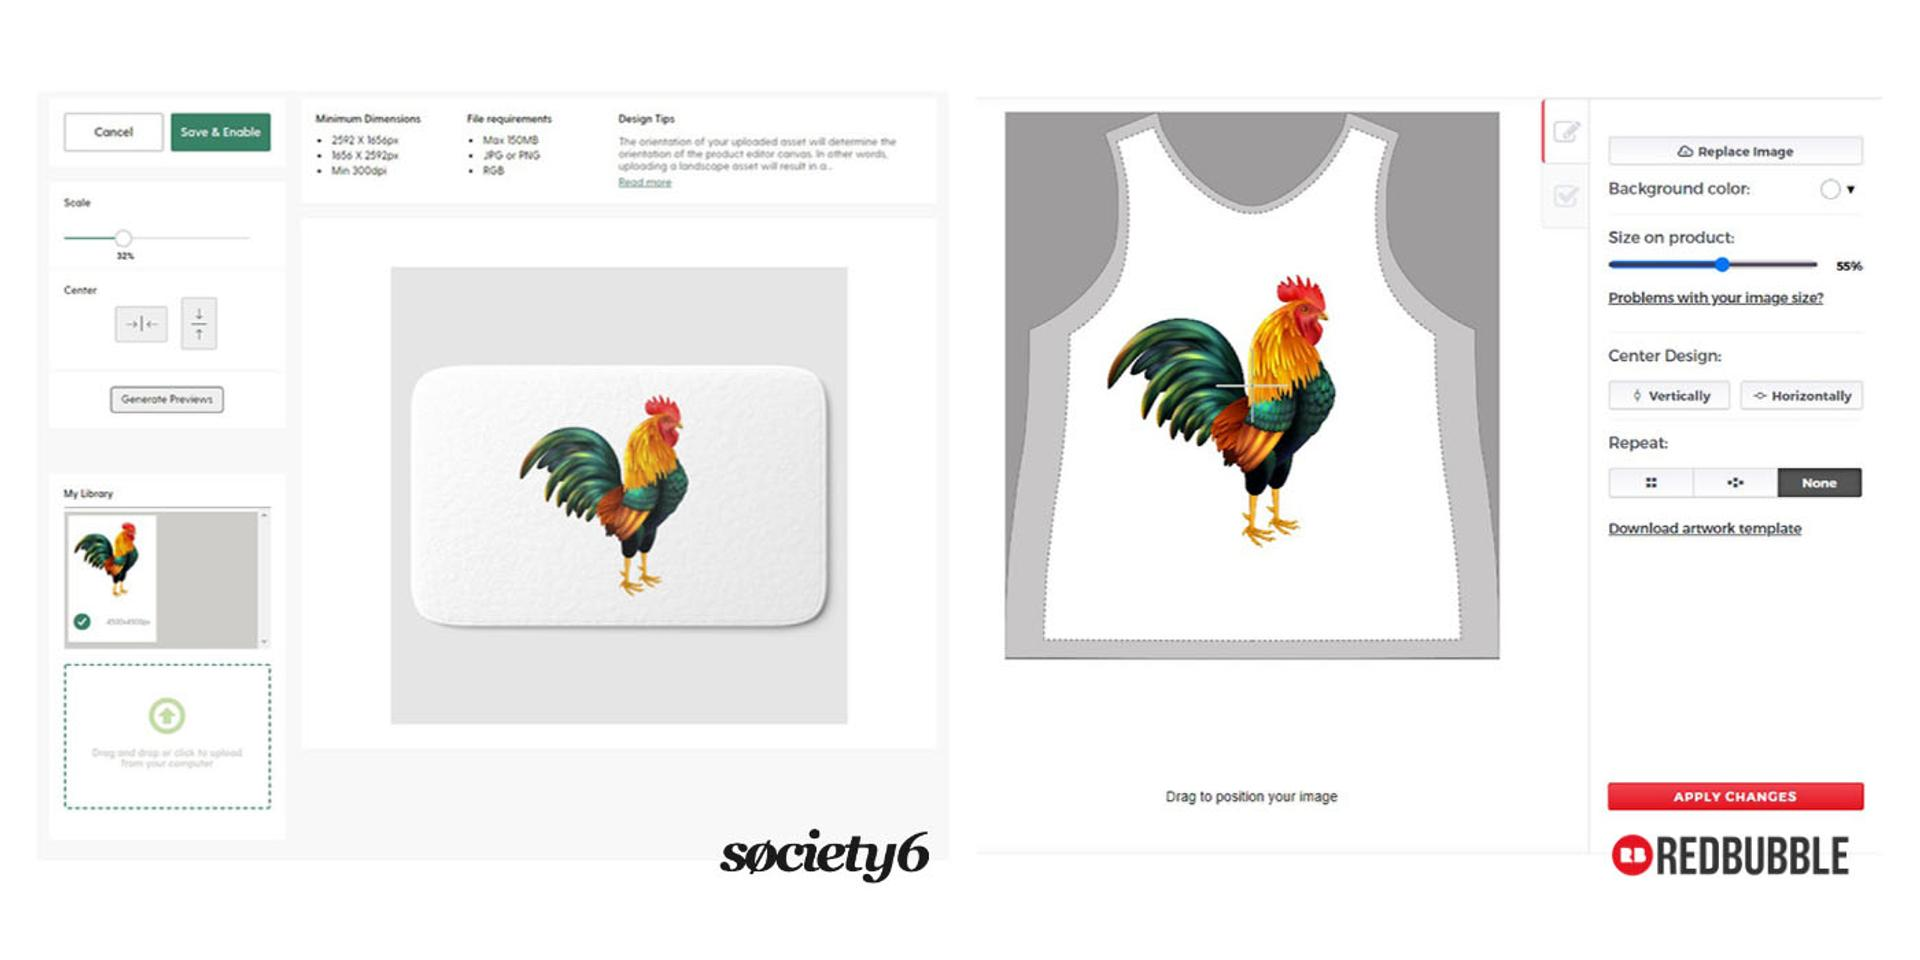 Society6 and Redbubble product editors